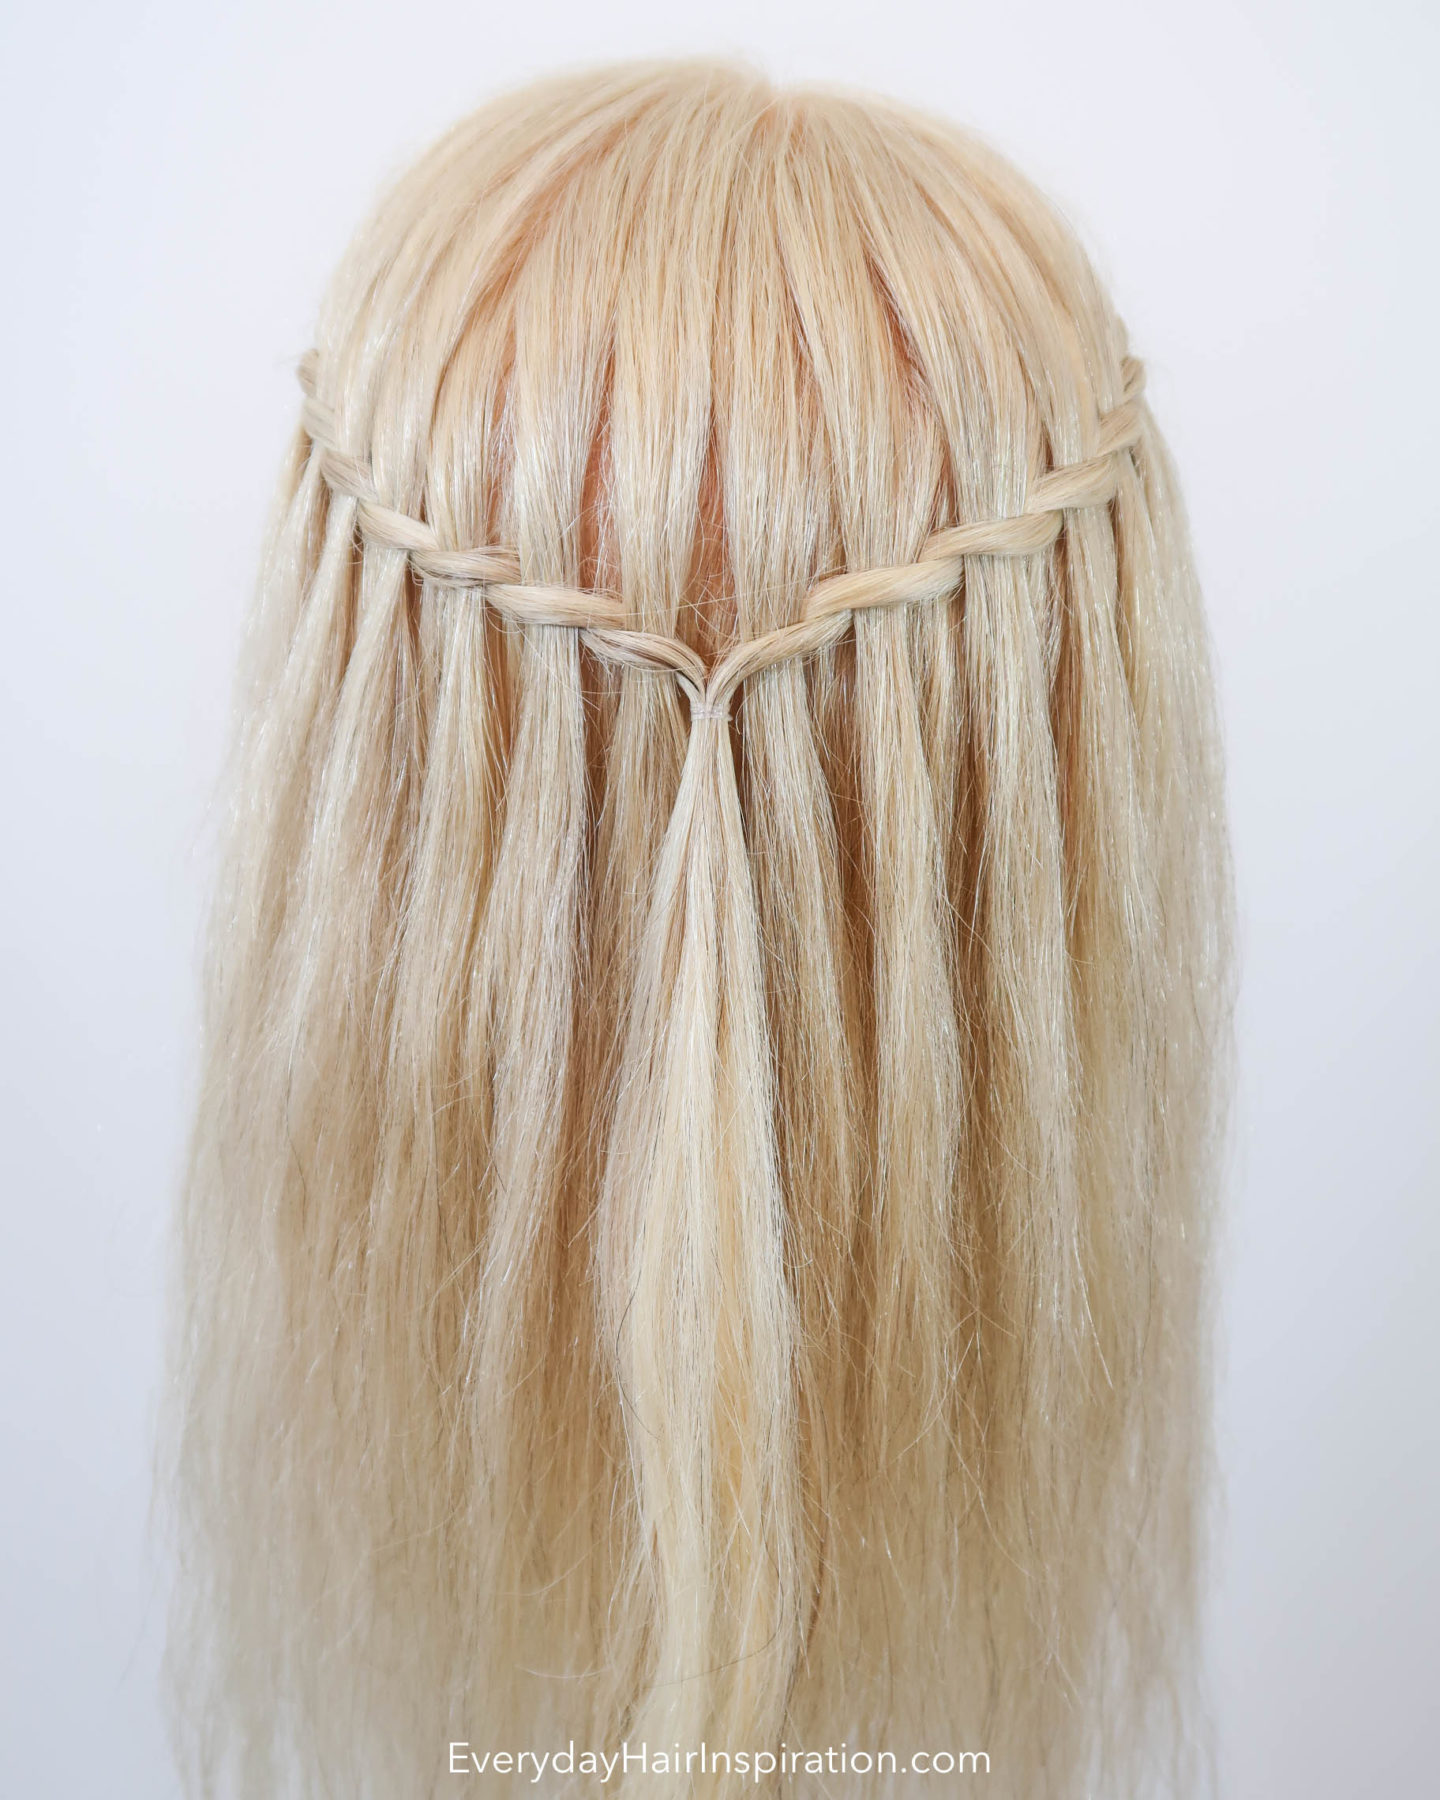 Blonde Hairdresser doll with a twisted waterfall braid in the hair, seen from the back.